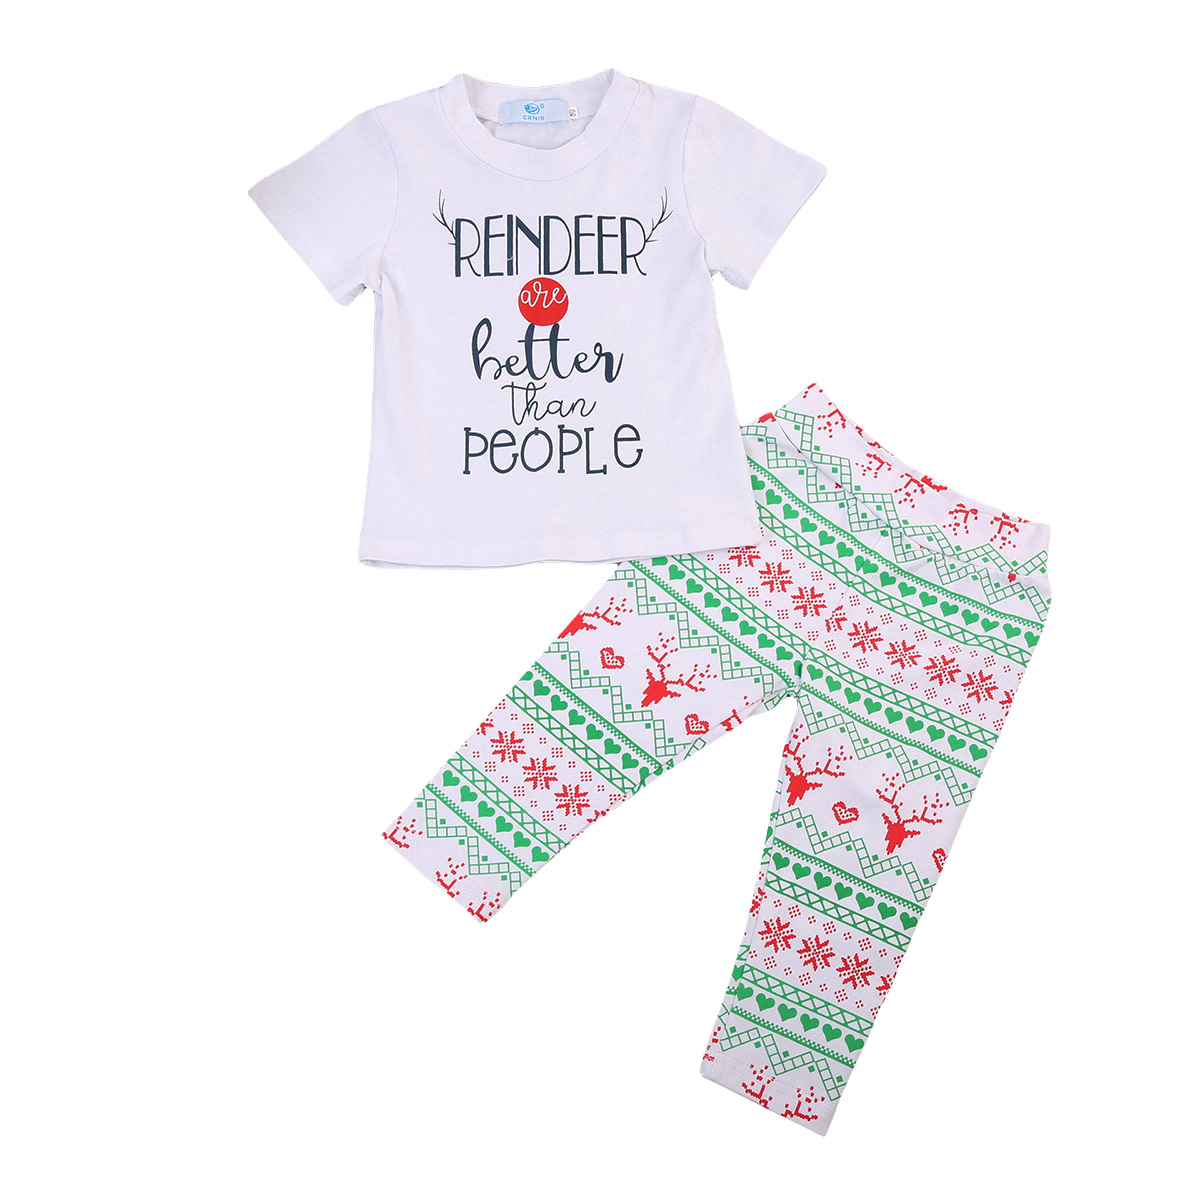 Christmas Toddler Kids Baby Girls Boys Clothes Sets T-shirt Tops Short Sleeve Pants Casual Cotton Clothes Outfits 0-6Y  2017 new fashion brand boys t shirt kids tops designer toddler baby boys t shirts cotton short sleeve tee shirt kids t shirt